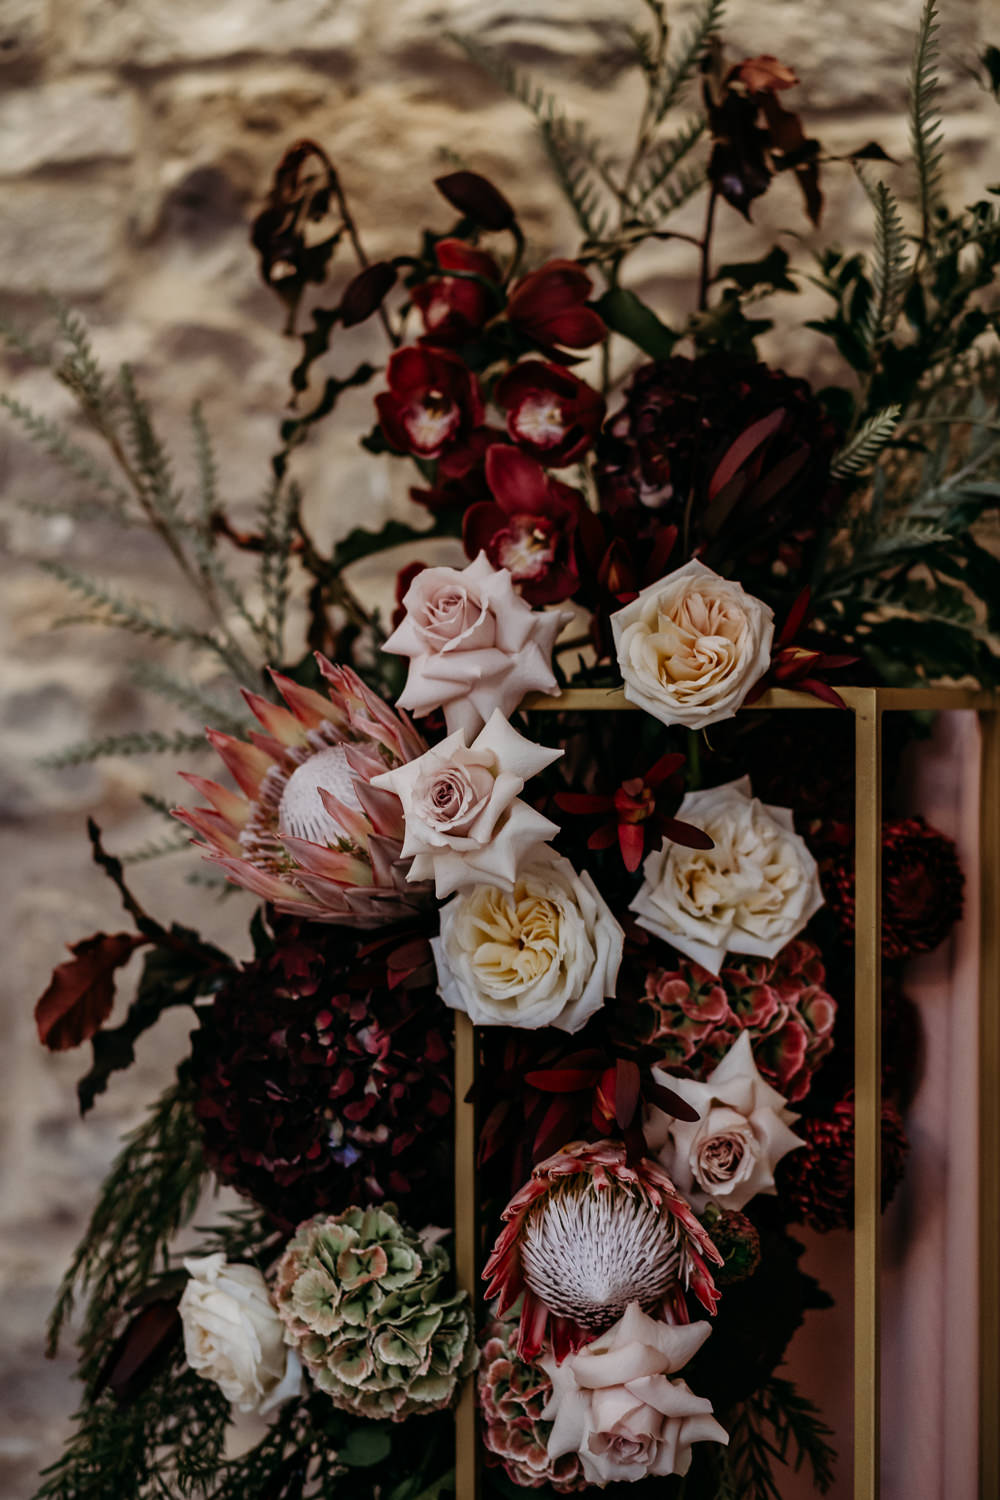 Flower Installation Backdrop Ceremony Aisle Protea Rose St. Tewdrics House Wedding When Charlie Met Hannah